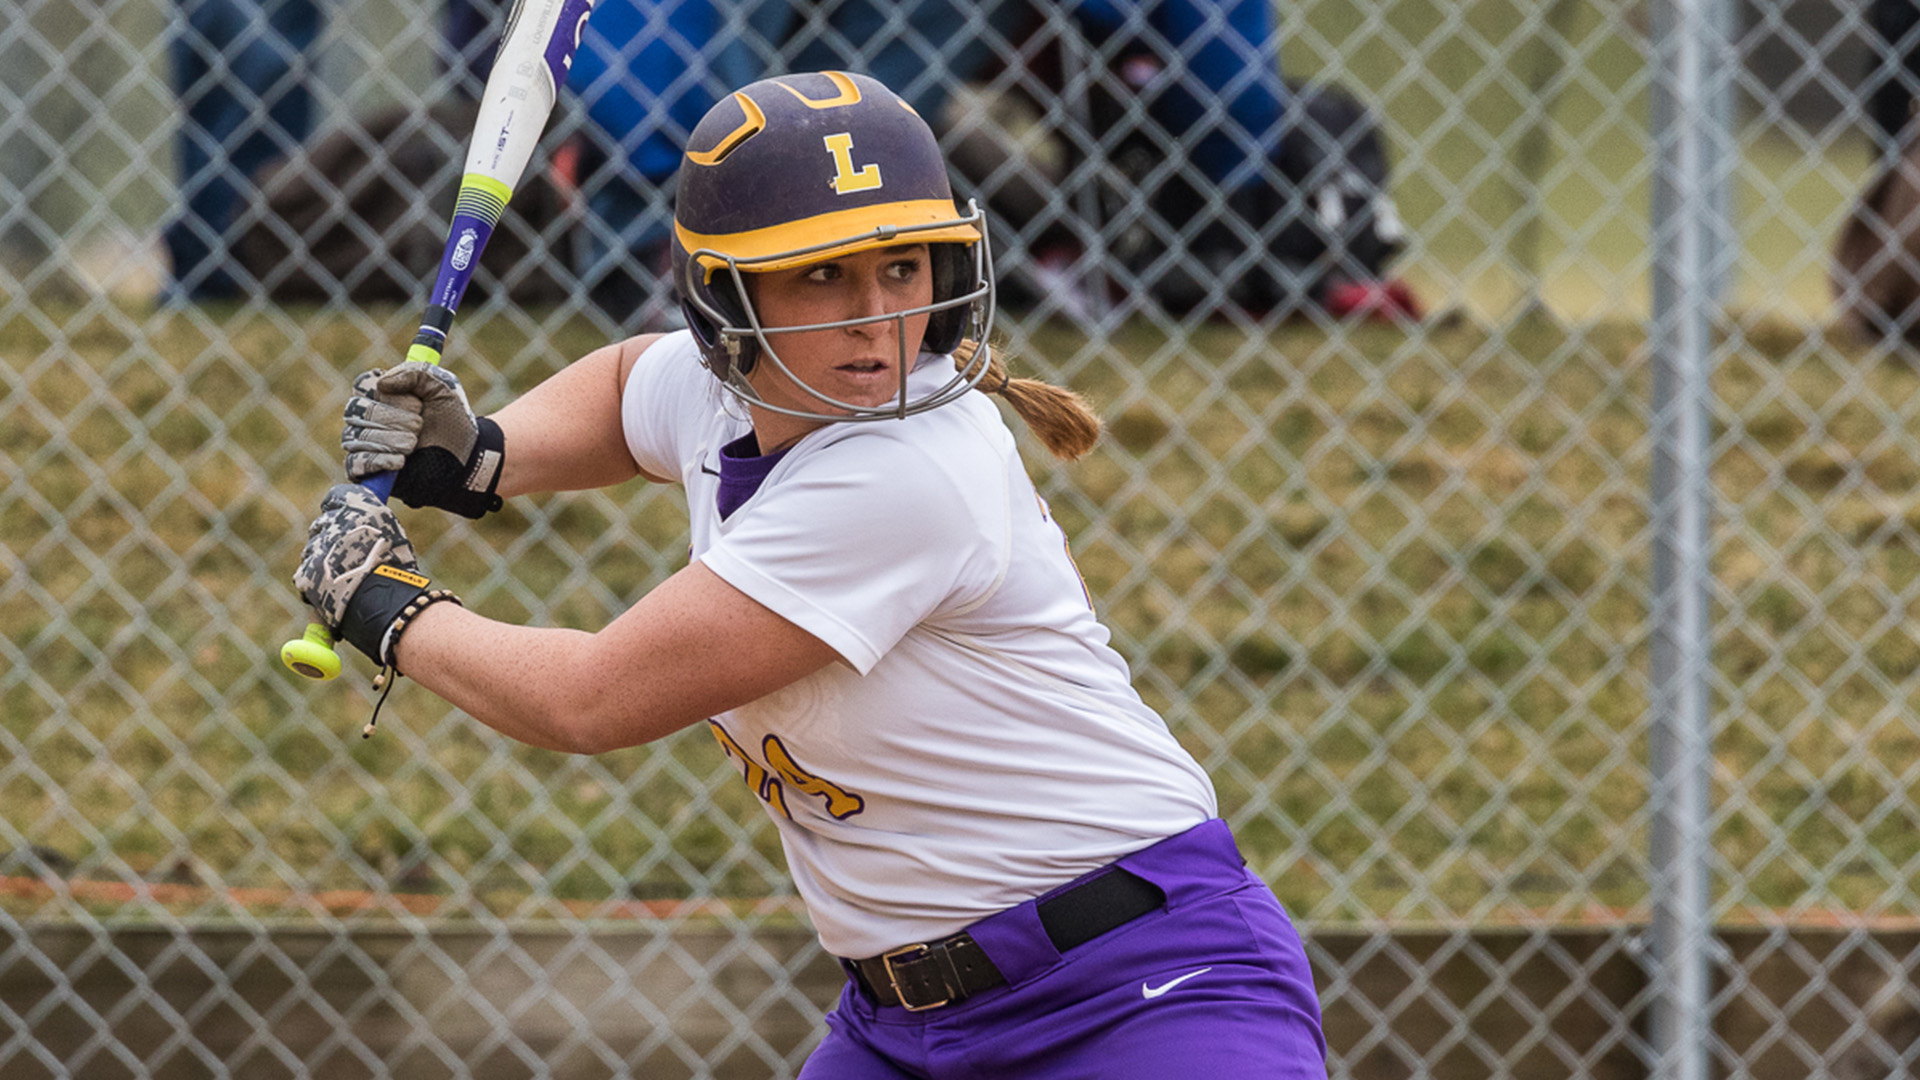 Shannon Coyle - Softball - Loras College Athletics